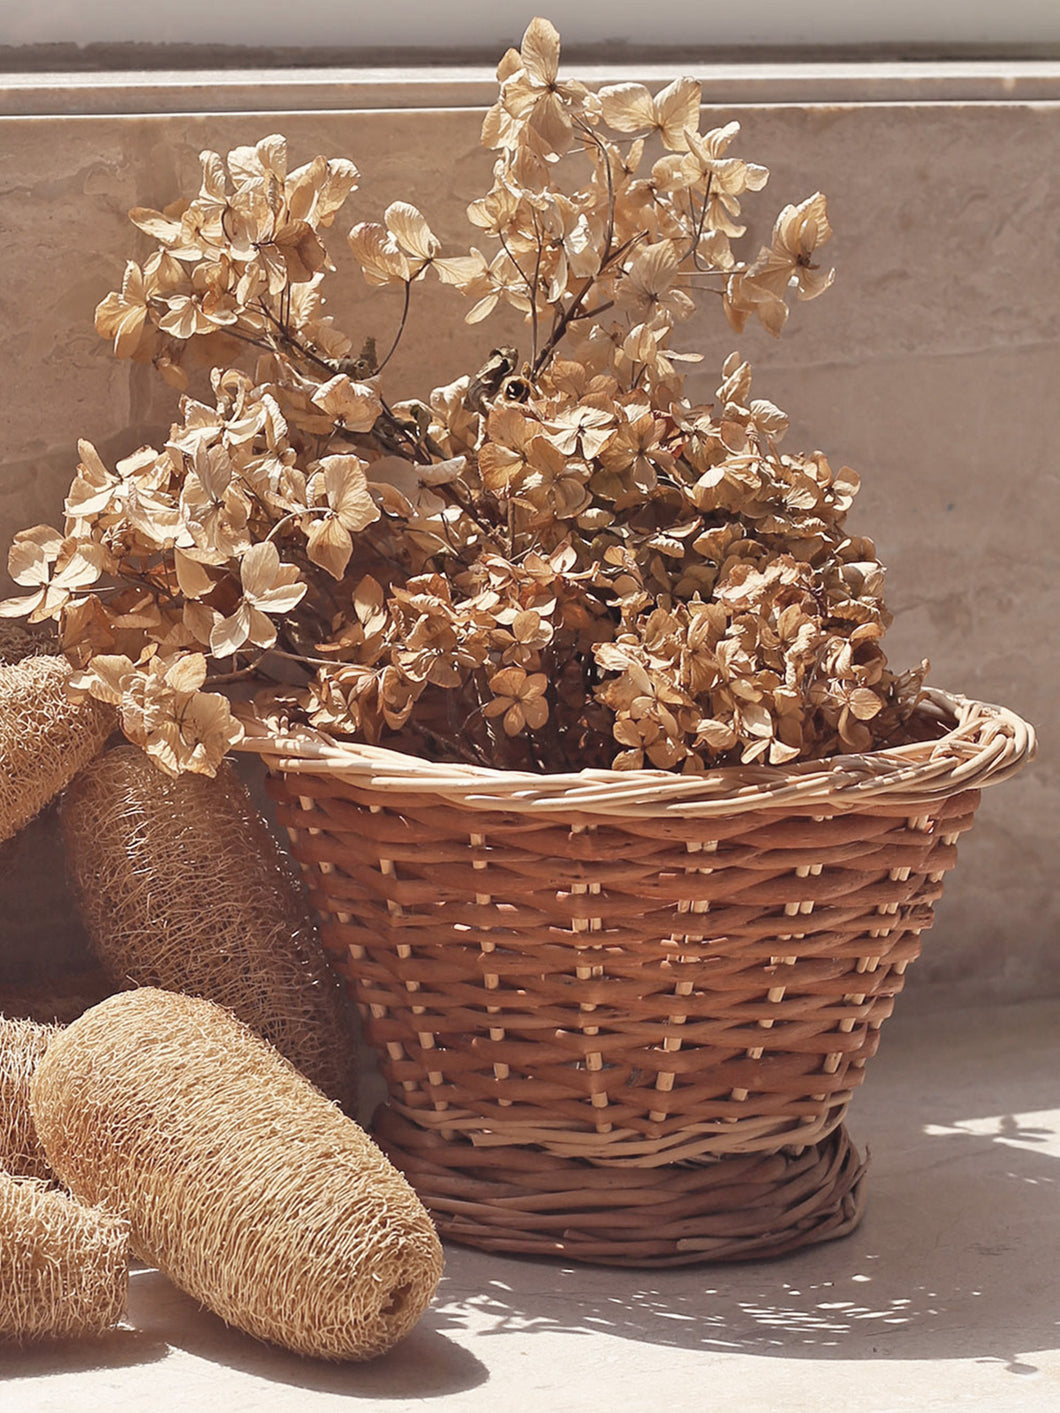 'Bouquet' multipurpose wicker basket